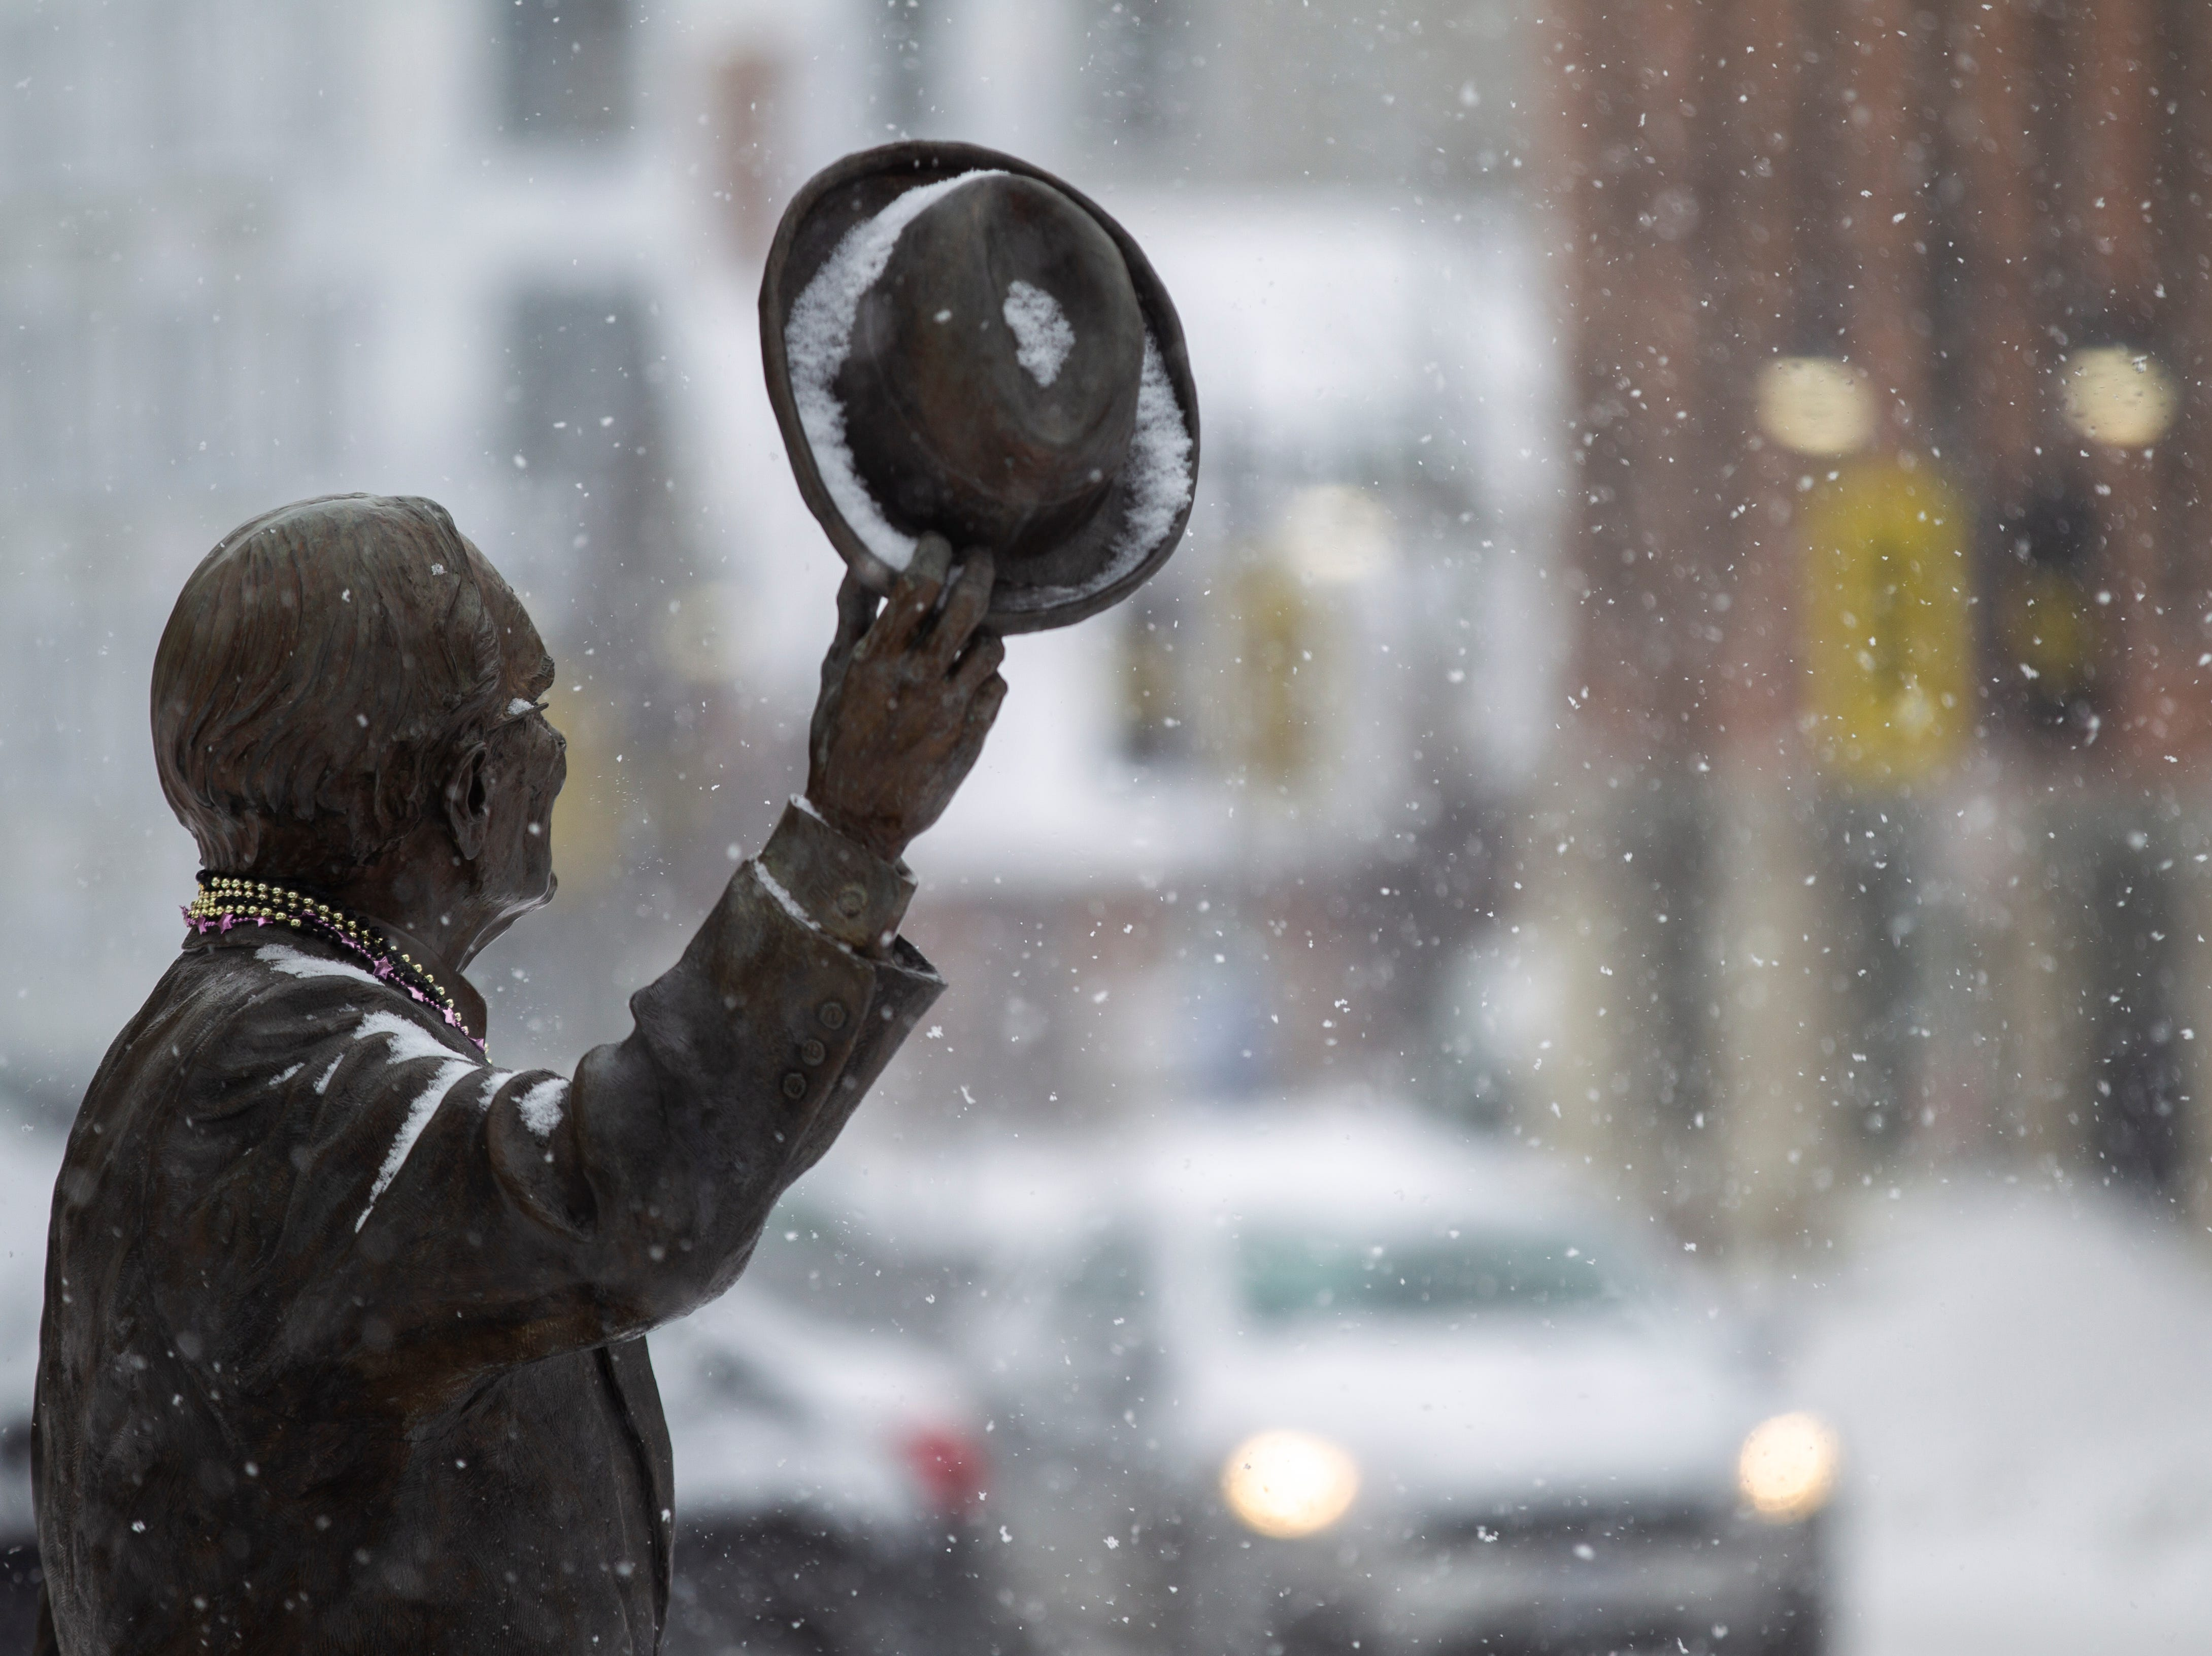 A statue of Irving B. Weber gets covered in snow on Thursday, Jan. 31, 2019, in downtown Iowa City, Iowa.